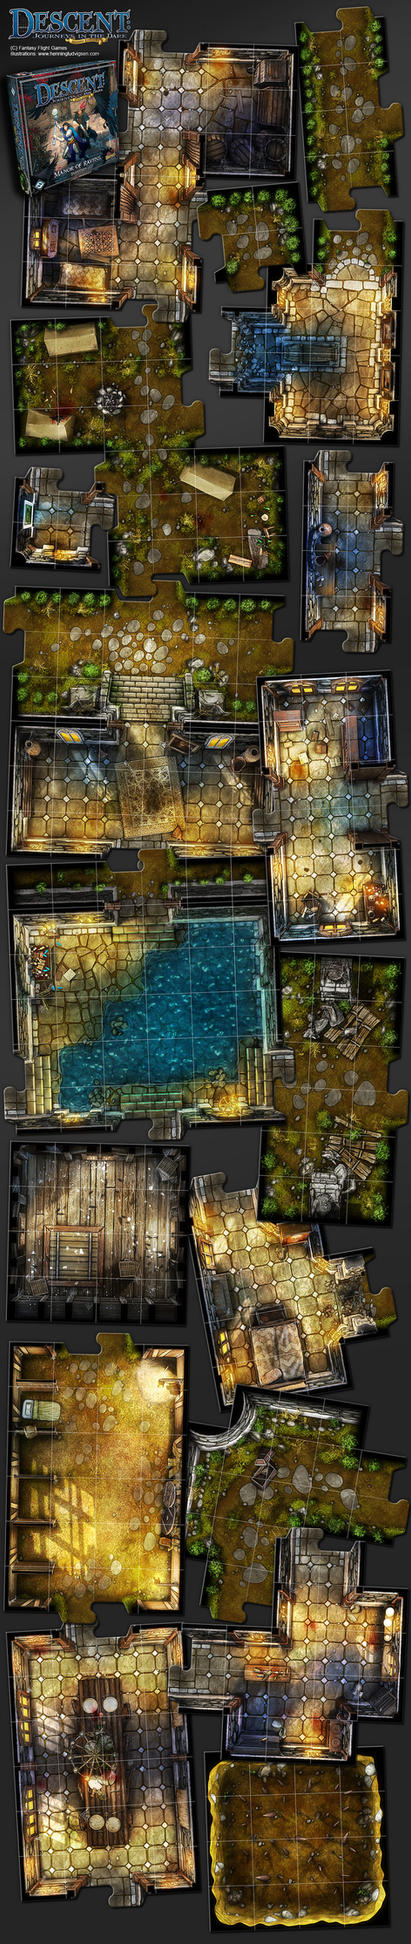 Descent, Manor Of Ravens expansion by henning